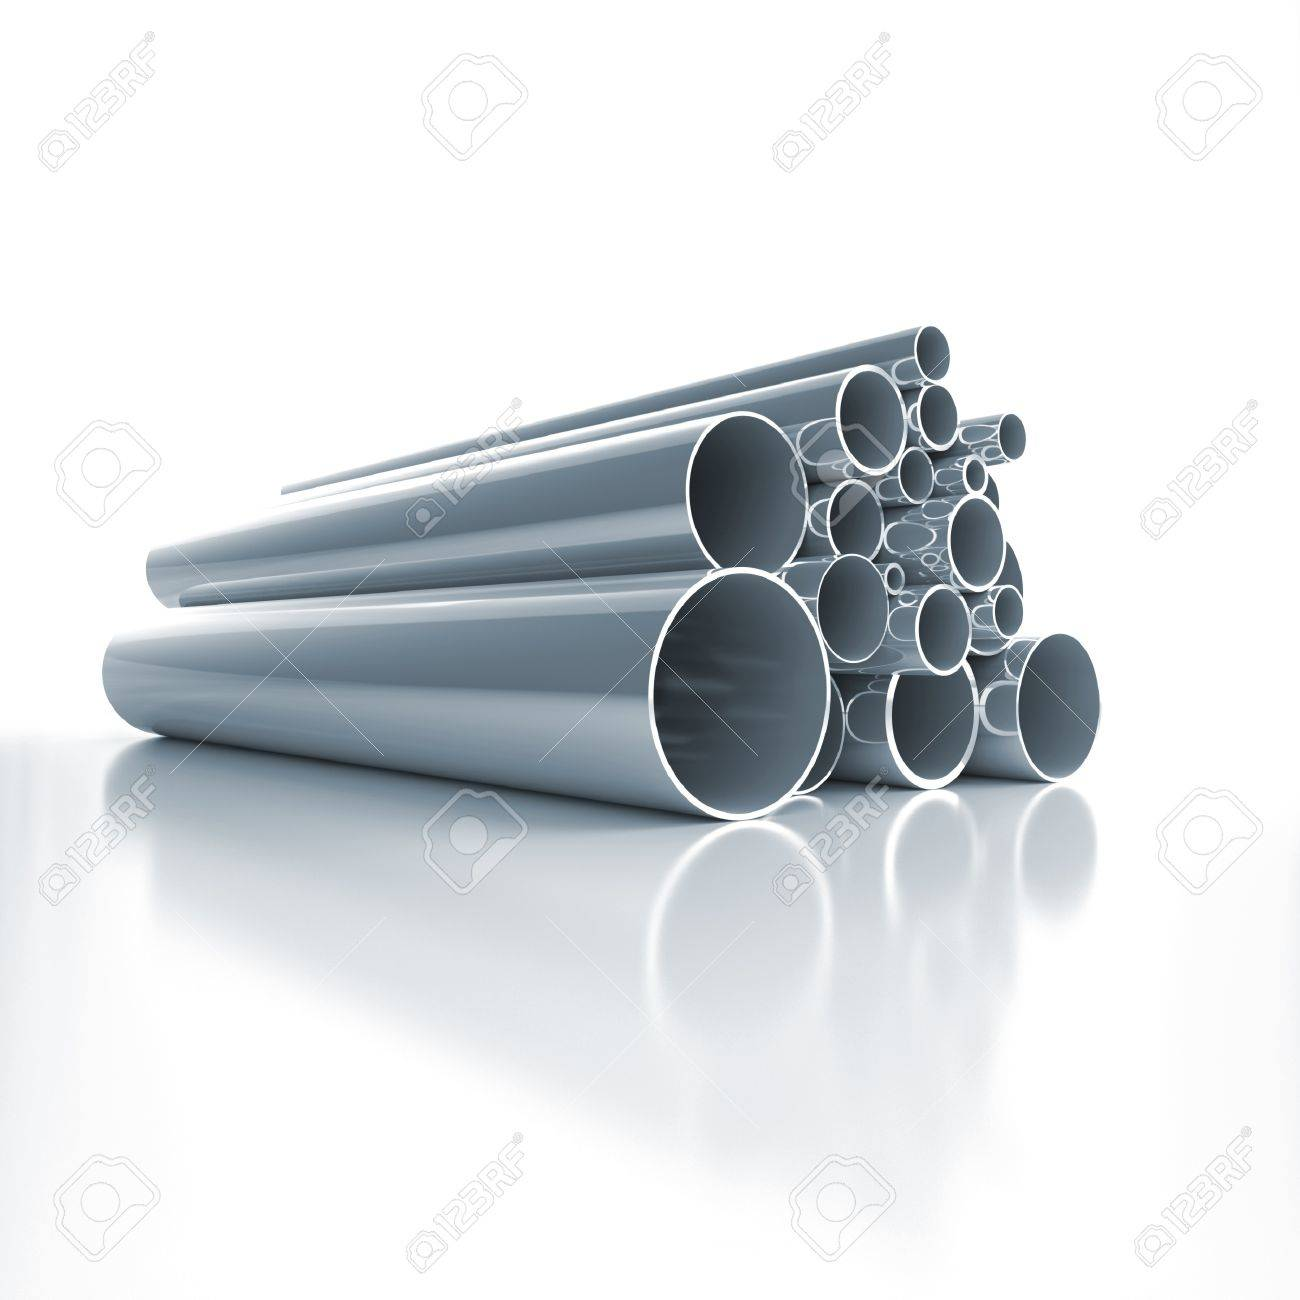 Lot of folded steel pipes Stock Photo - 11093270